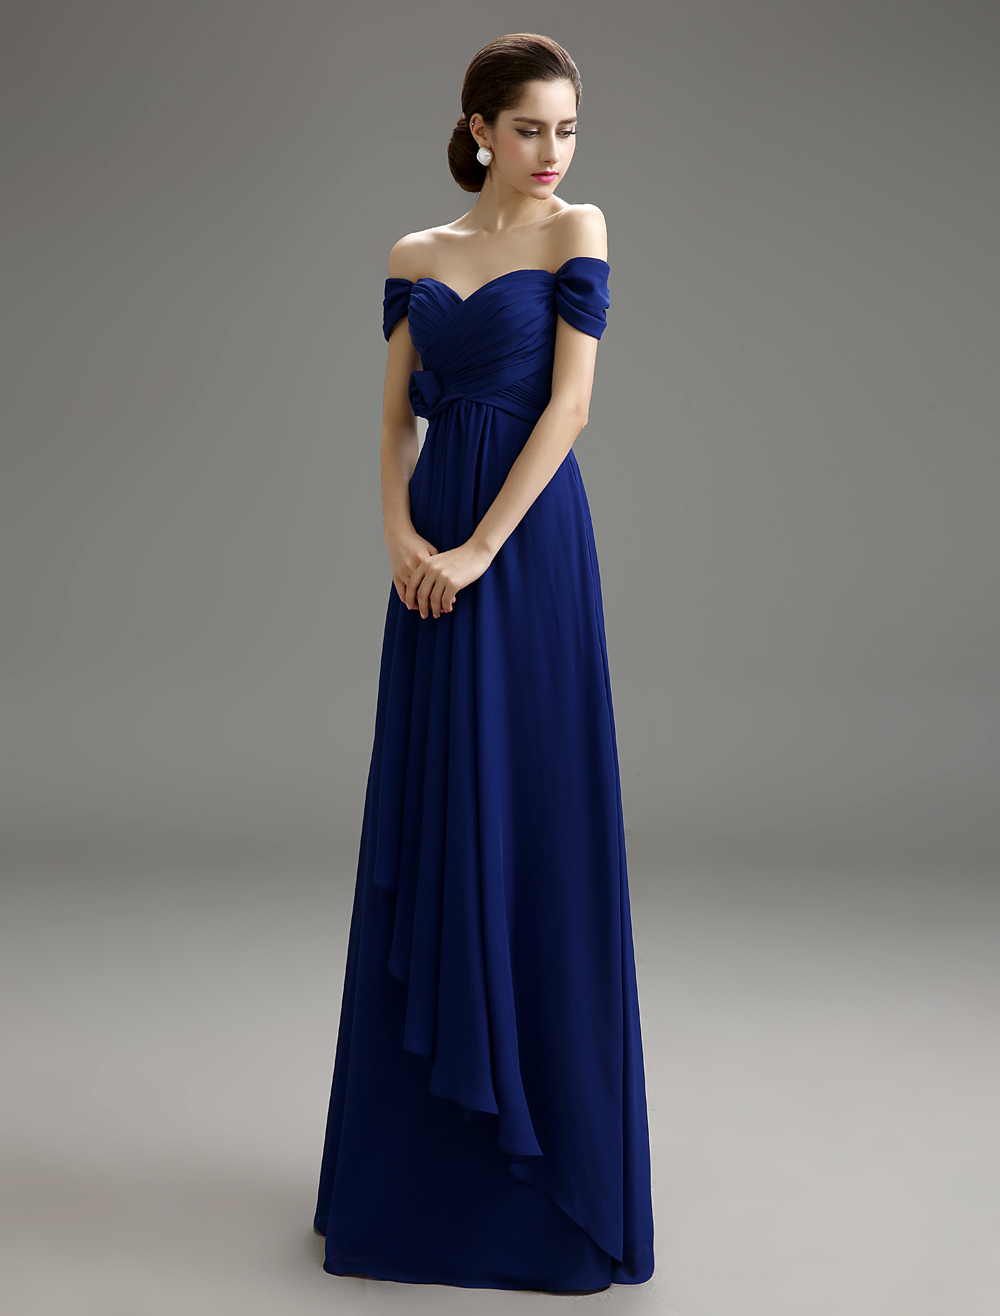 227023f75d6eb Sweetheart Chiffon Detachable Bridesmaid Dress with Off-The-Shoulder  Wedding Guest Dress Milanoo